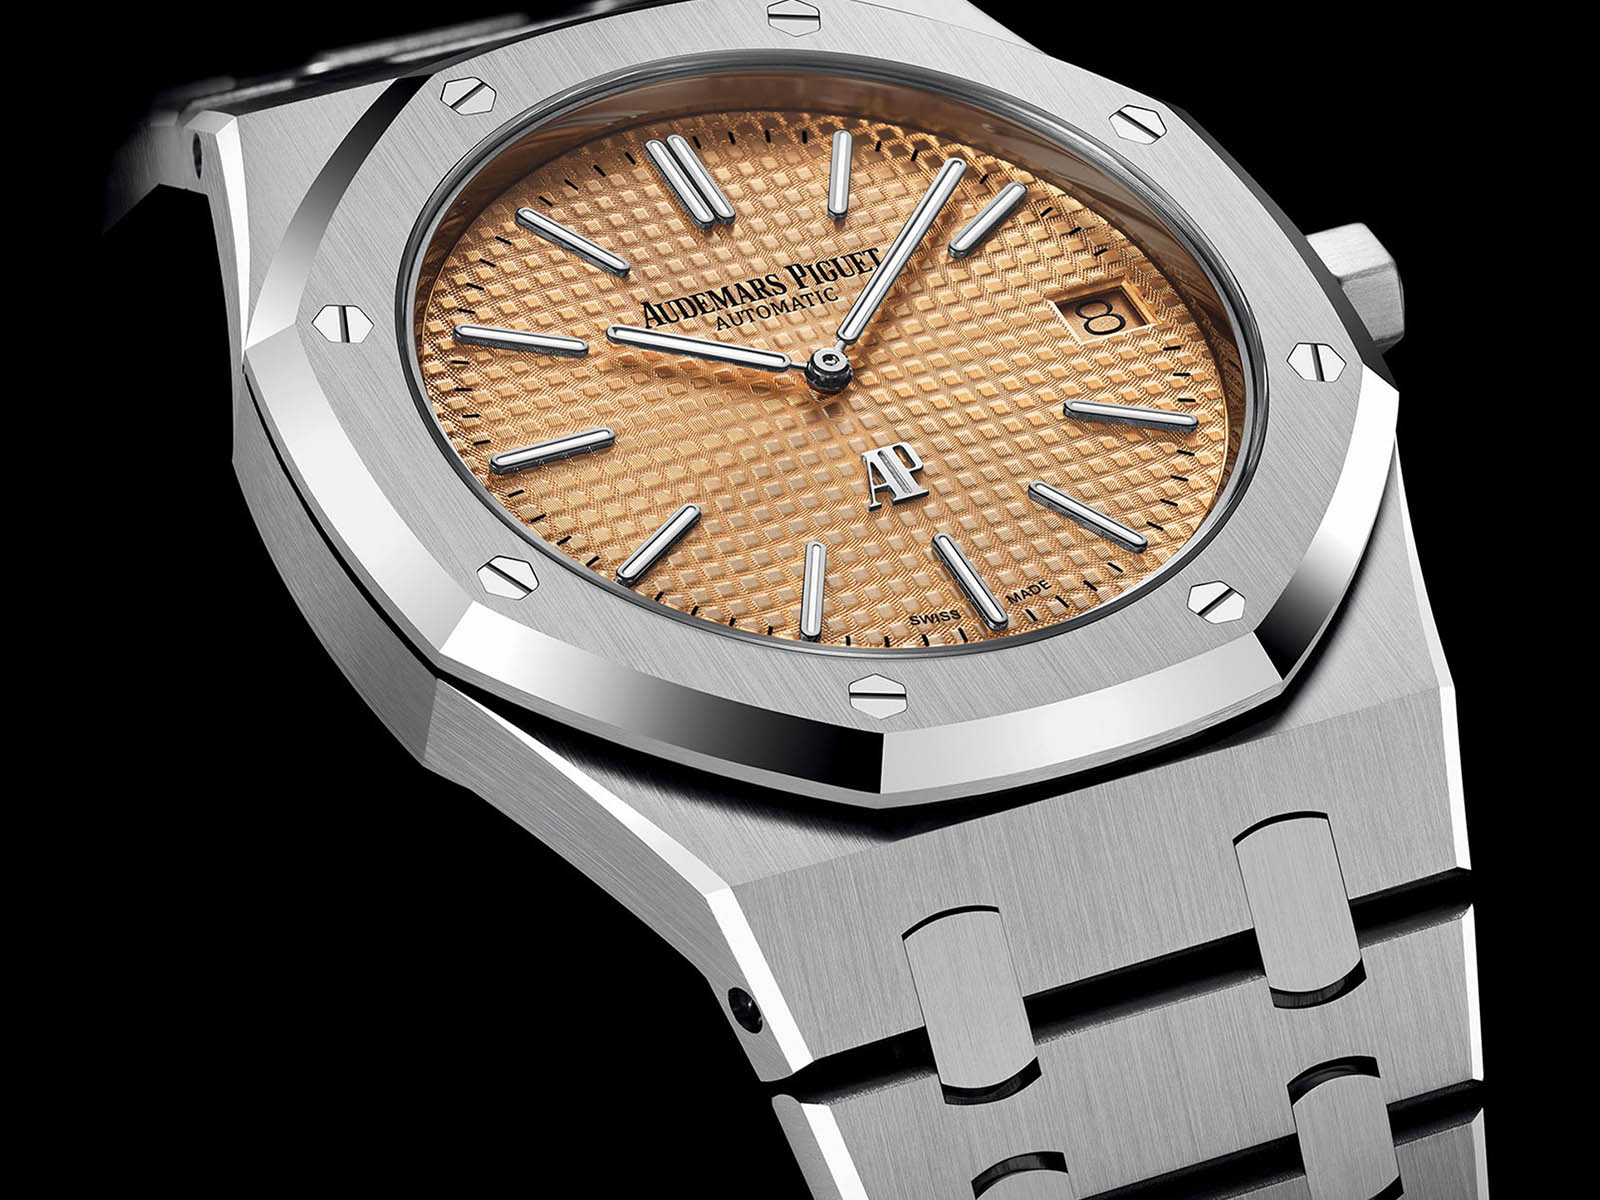 15202bc-oo-1240bc-01-audemars-piguet-royal-oak-jumbo-extra-thin-2.jpg